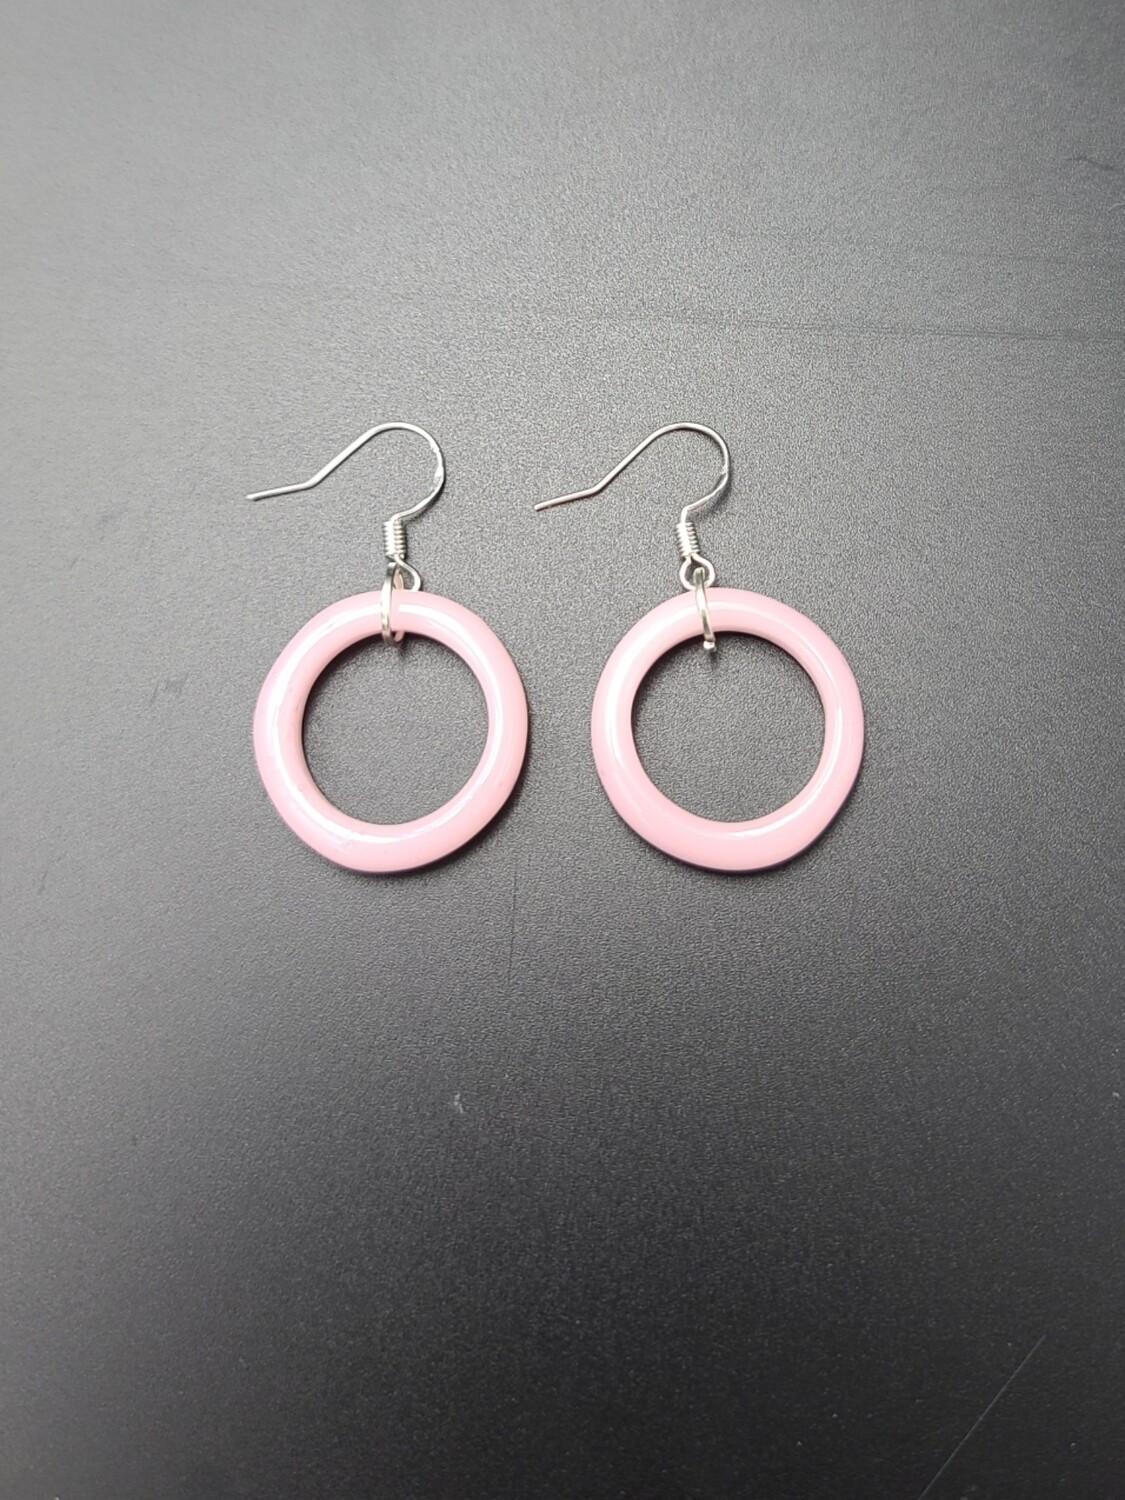 Marni OG Ring Earring Set - Pink Cadillac (Opaque Pink)